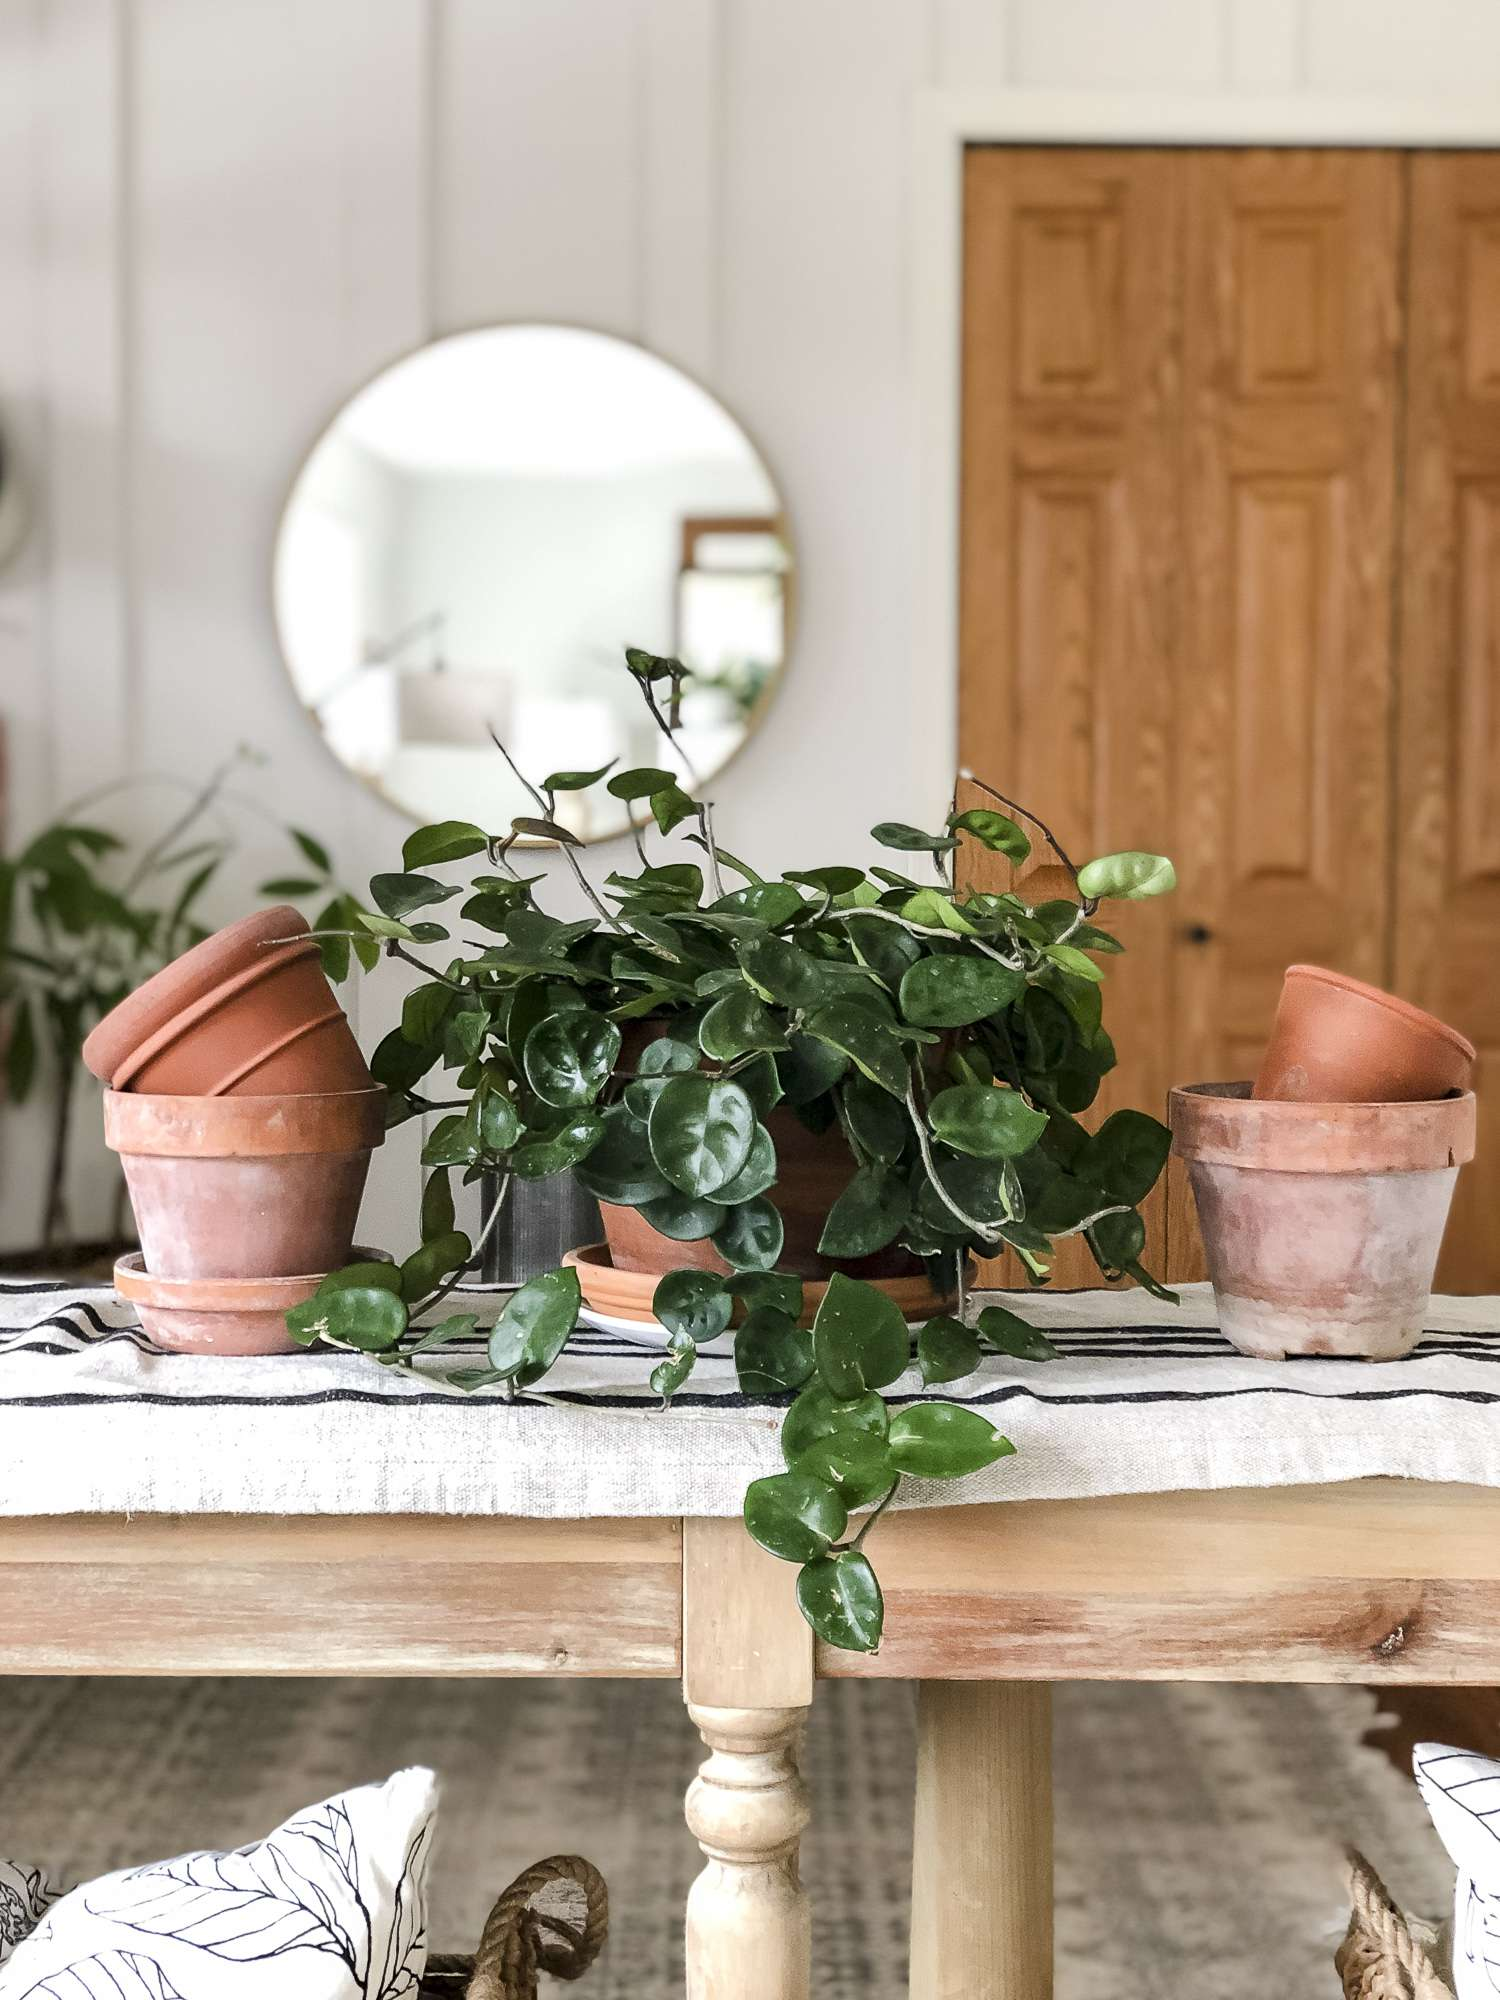 Do you want to be a plant lady but don't know where to start? Here are some of the easiest plants to care for and tips for growing plants indoors! #fromhousetohaven #plantcare #indoorplants